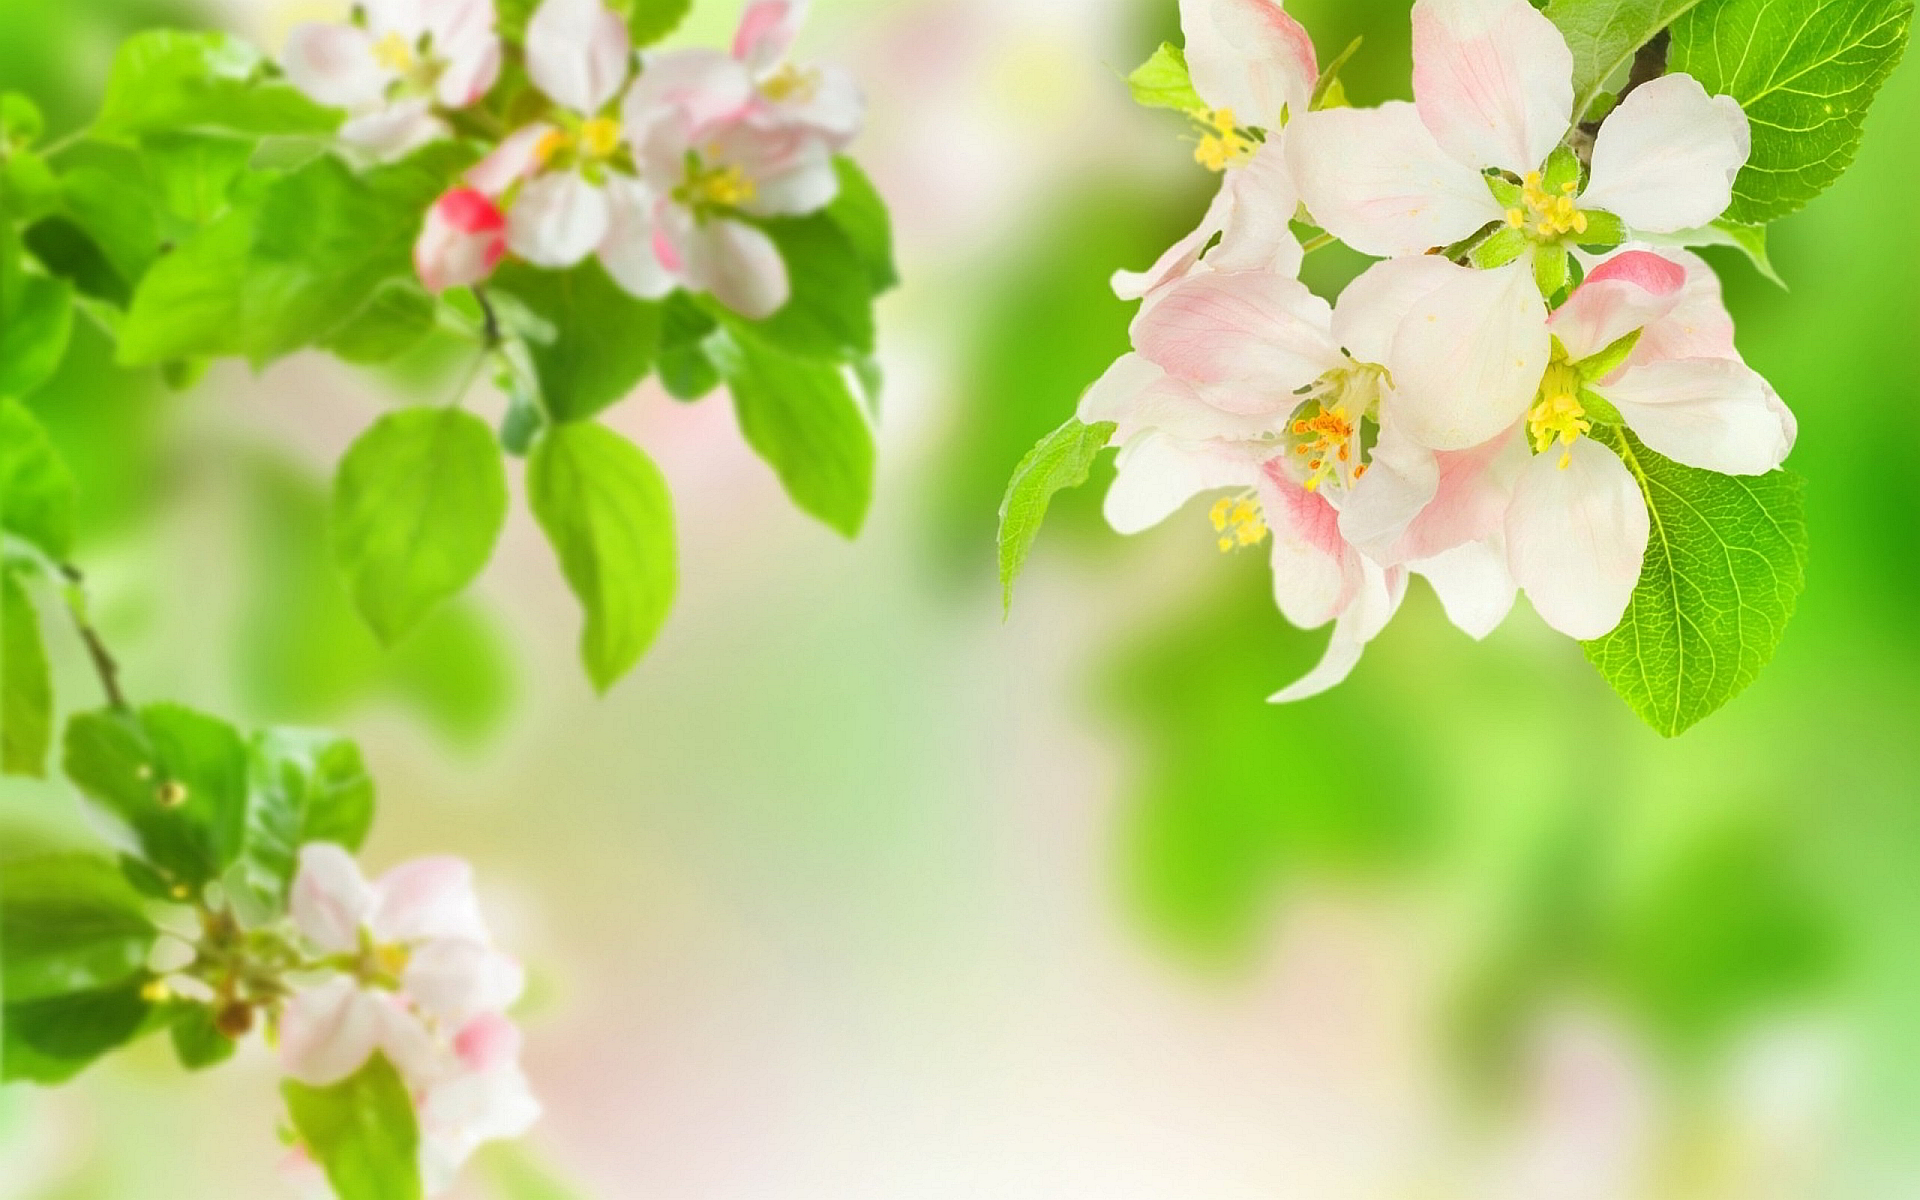 Apple Blossom Wallpaper For Desktop 1920x1200